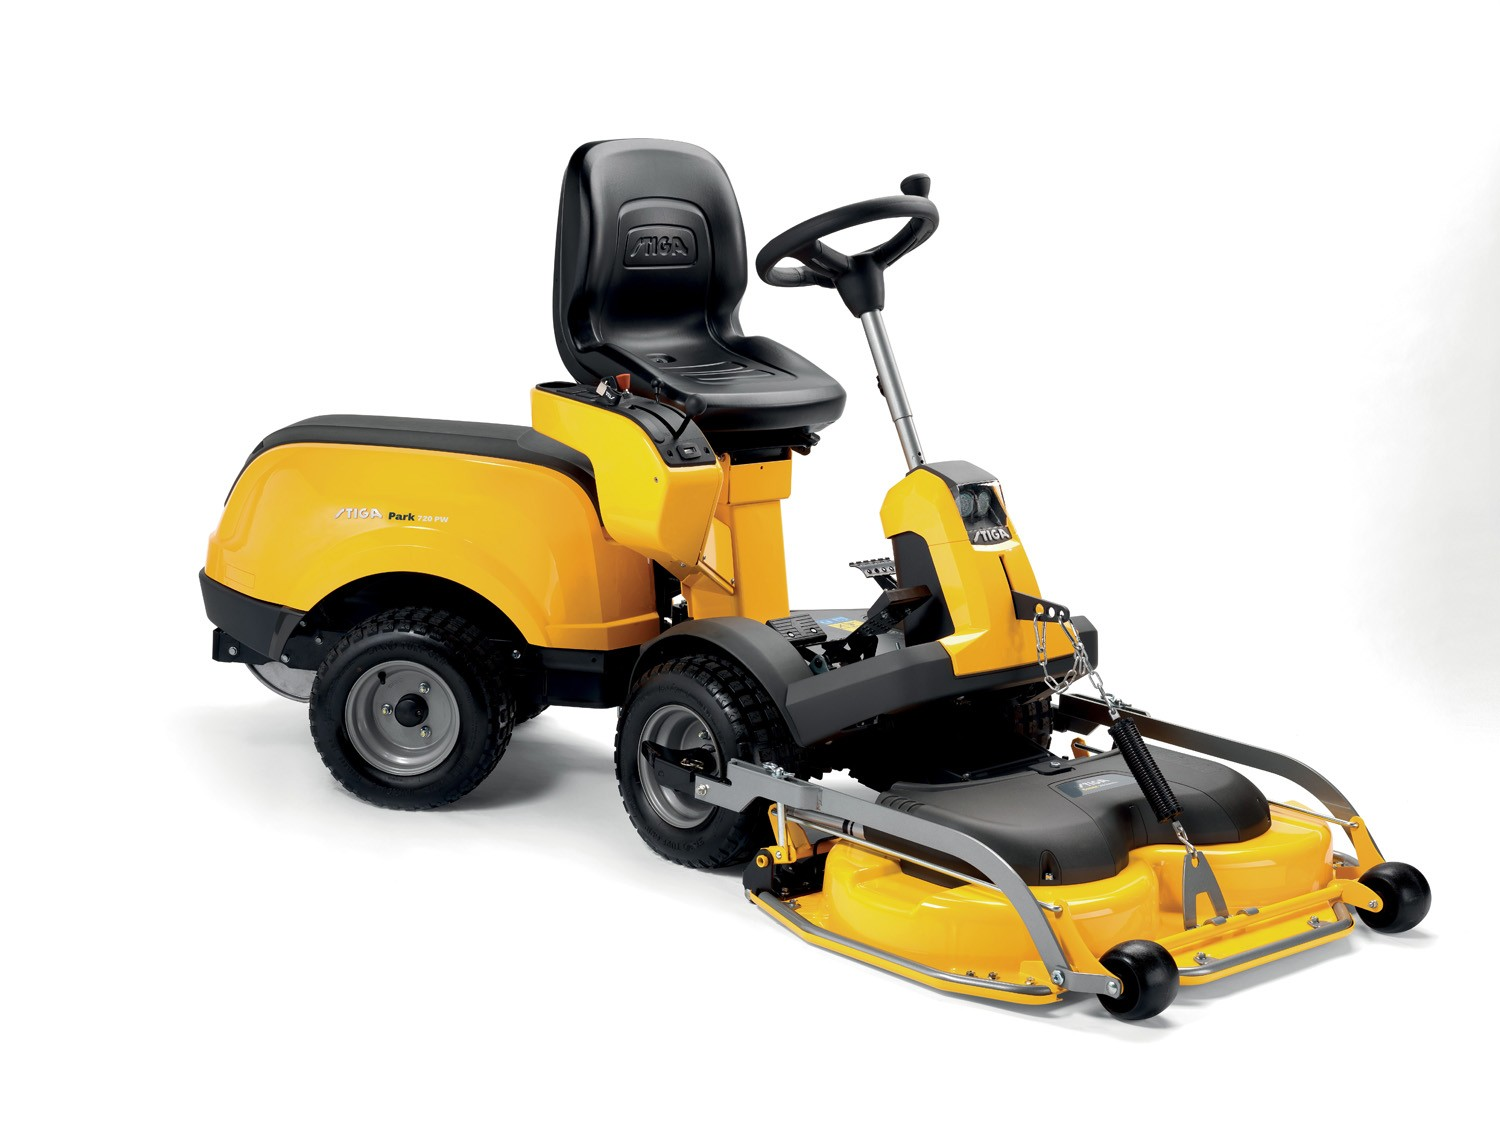 Park 720 lawnmower